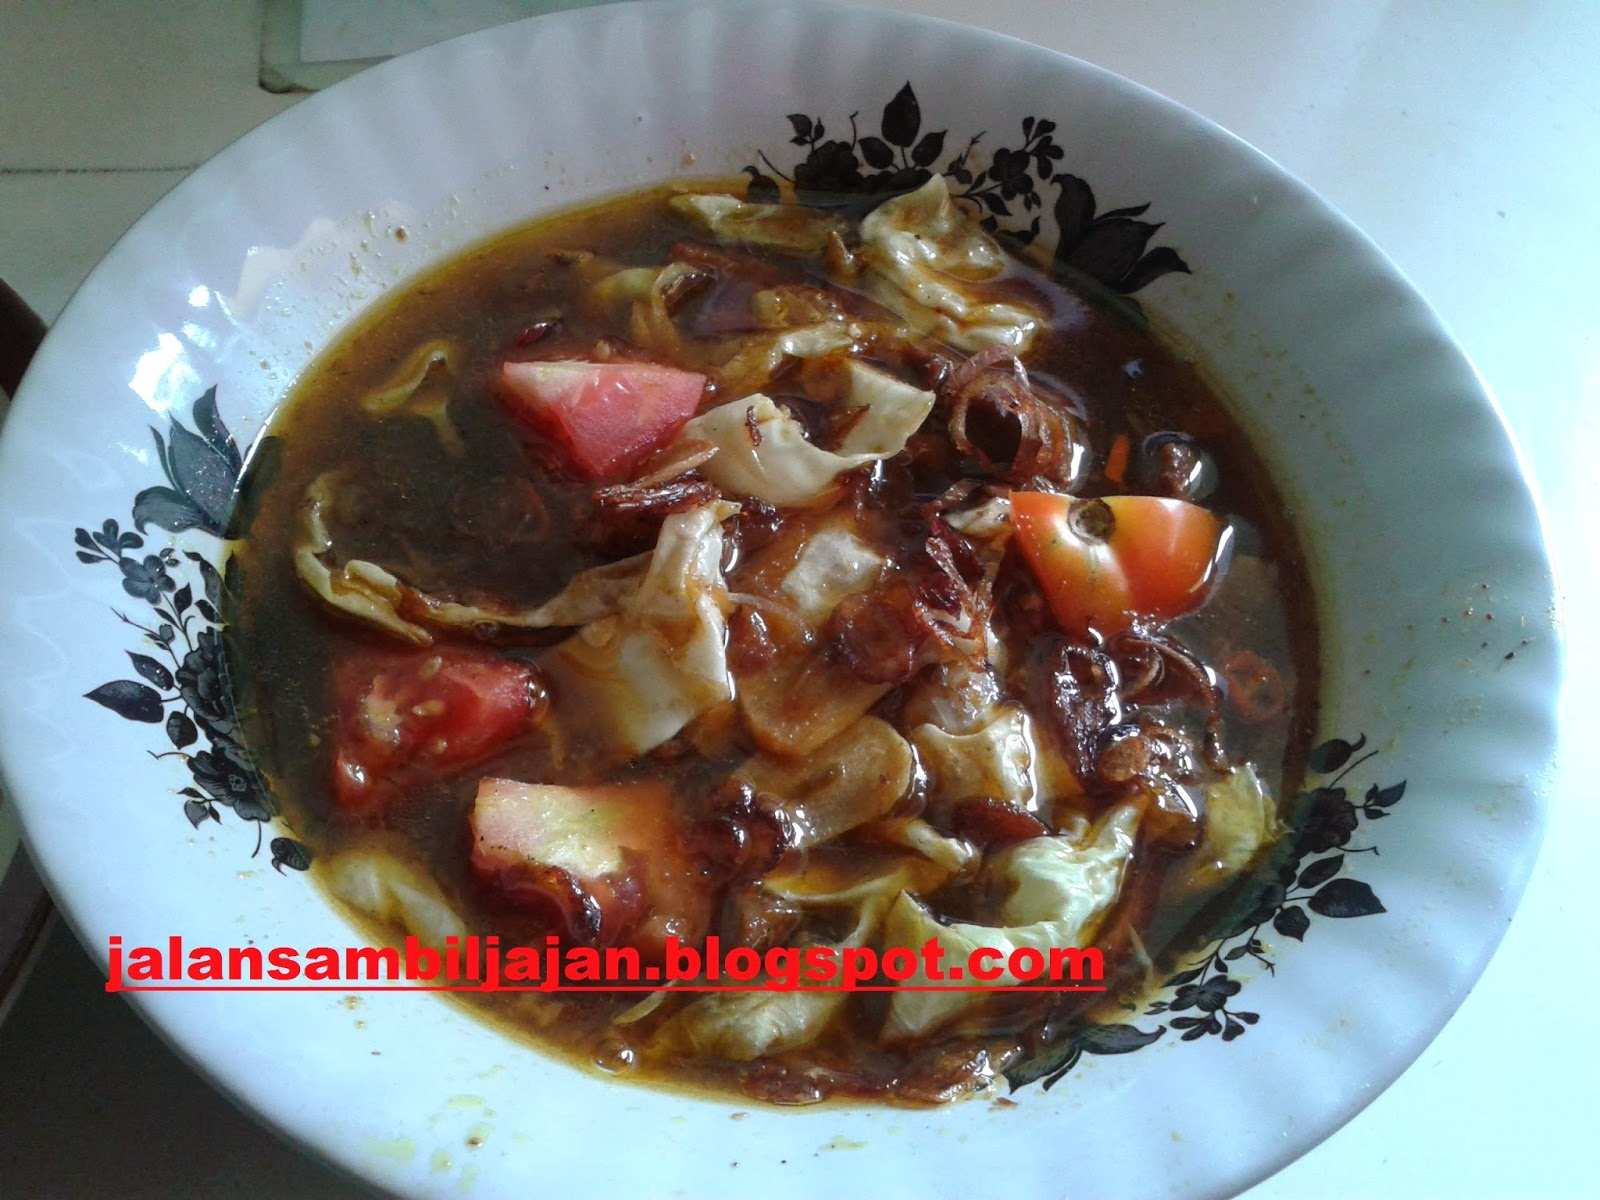 Tongseng Daging Bang Pitung